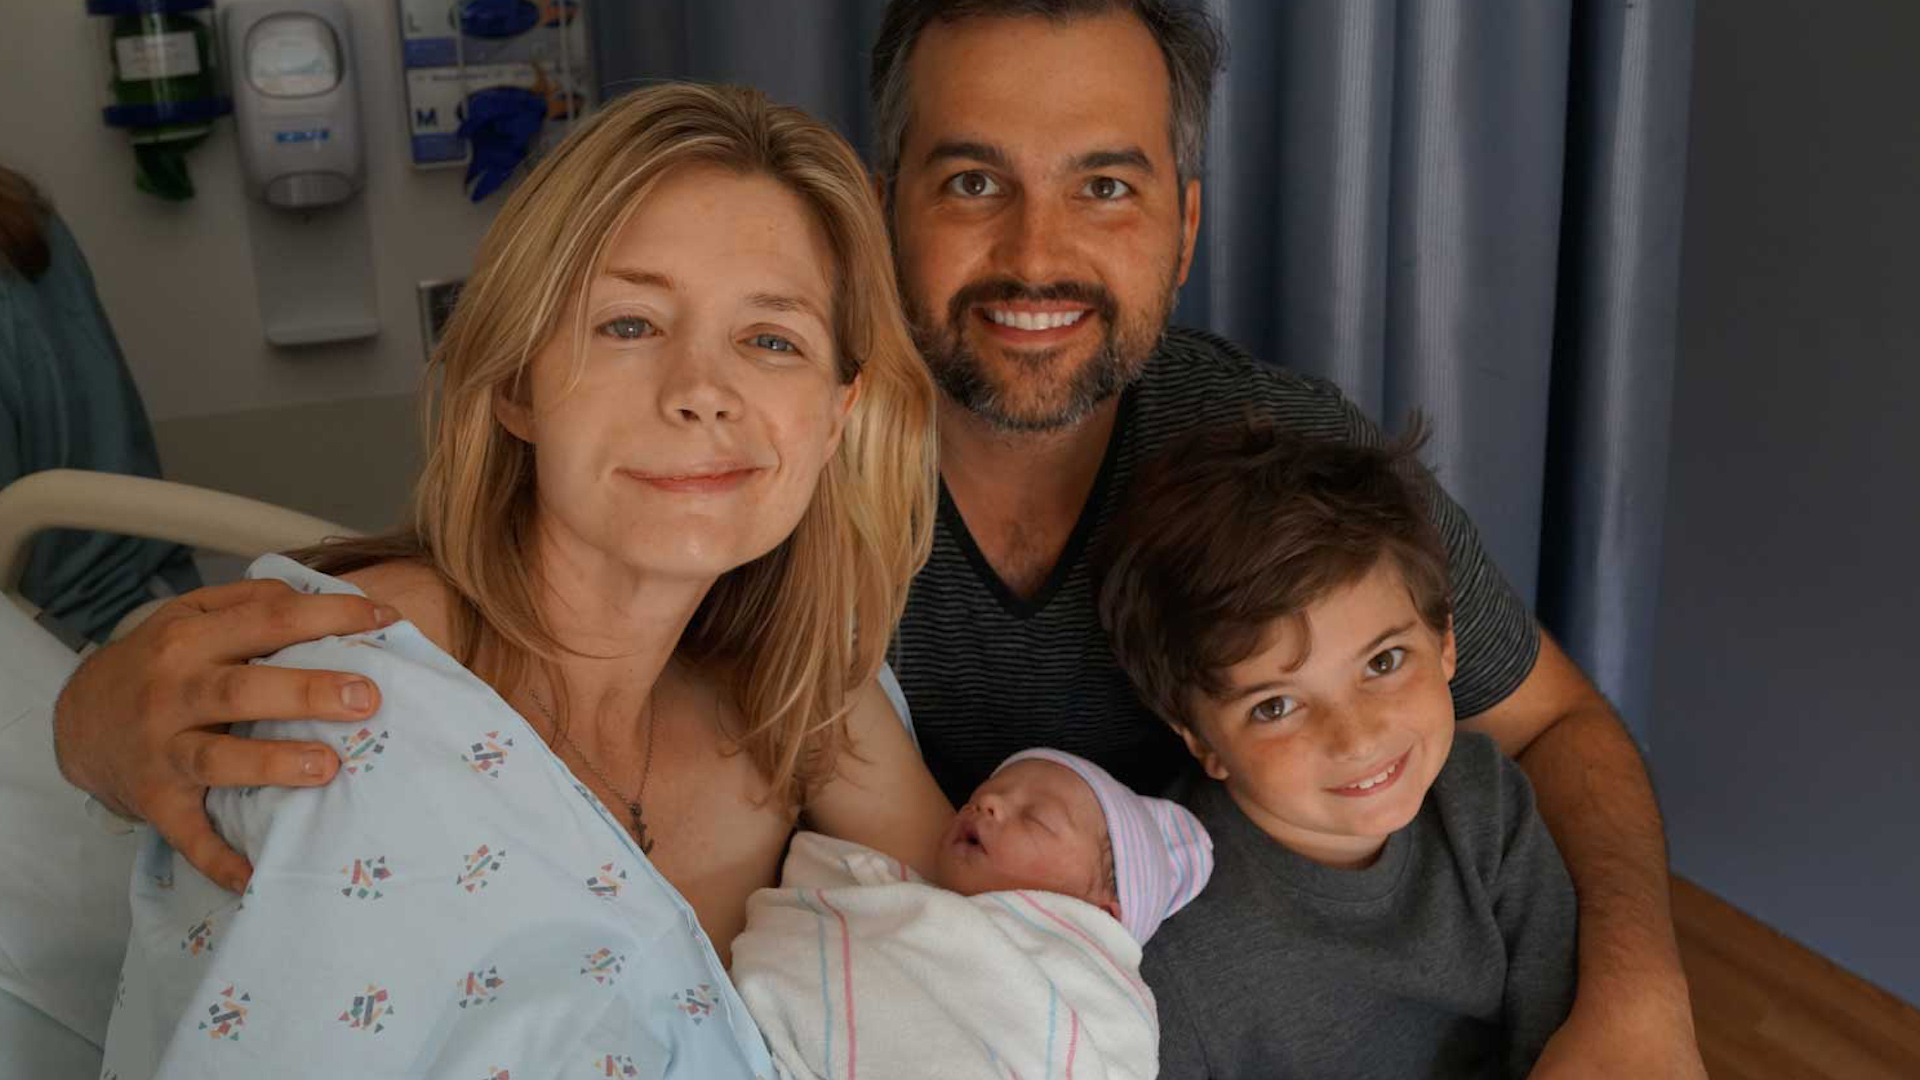 Parenting Against All Odds_Katherine and Jay Wolf - Family with Newborn in Hospital